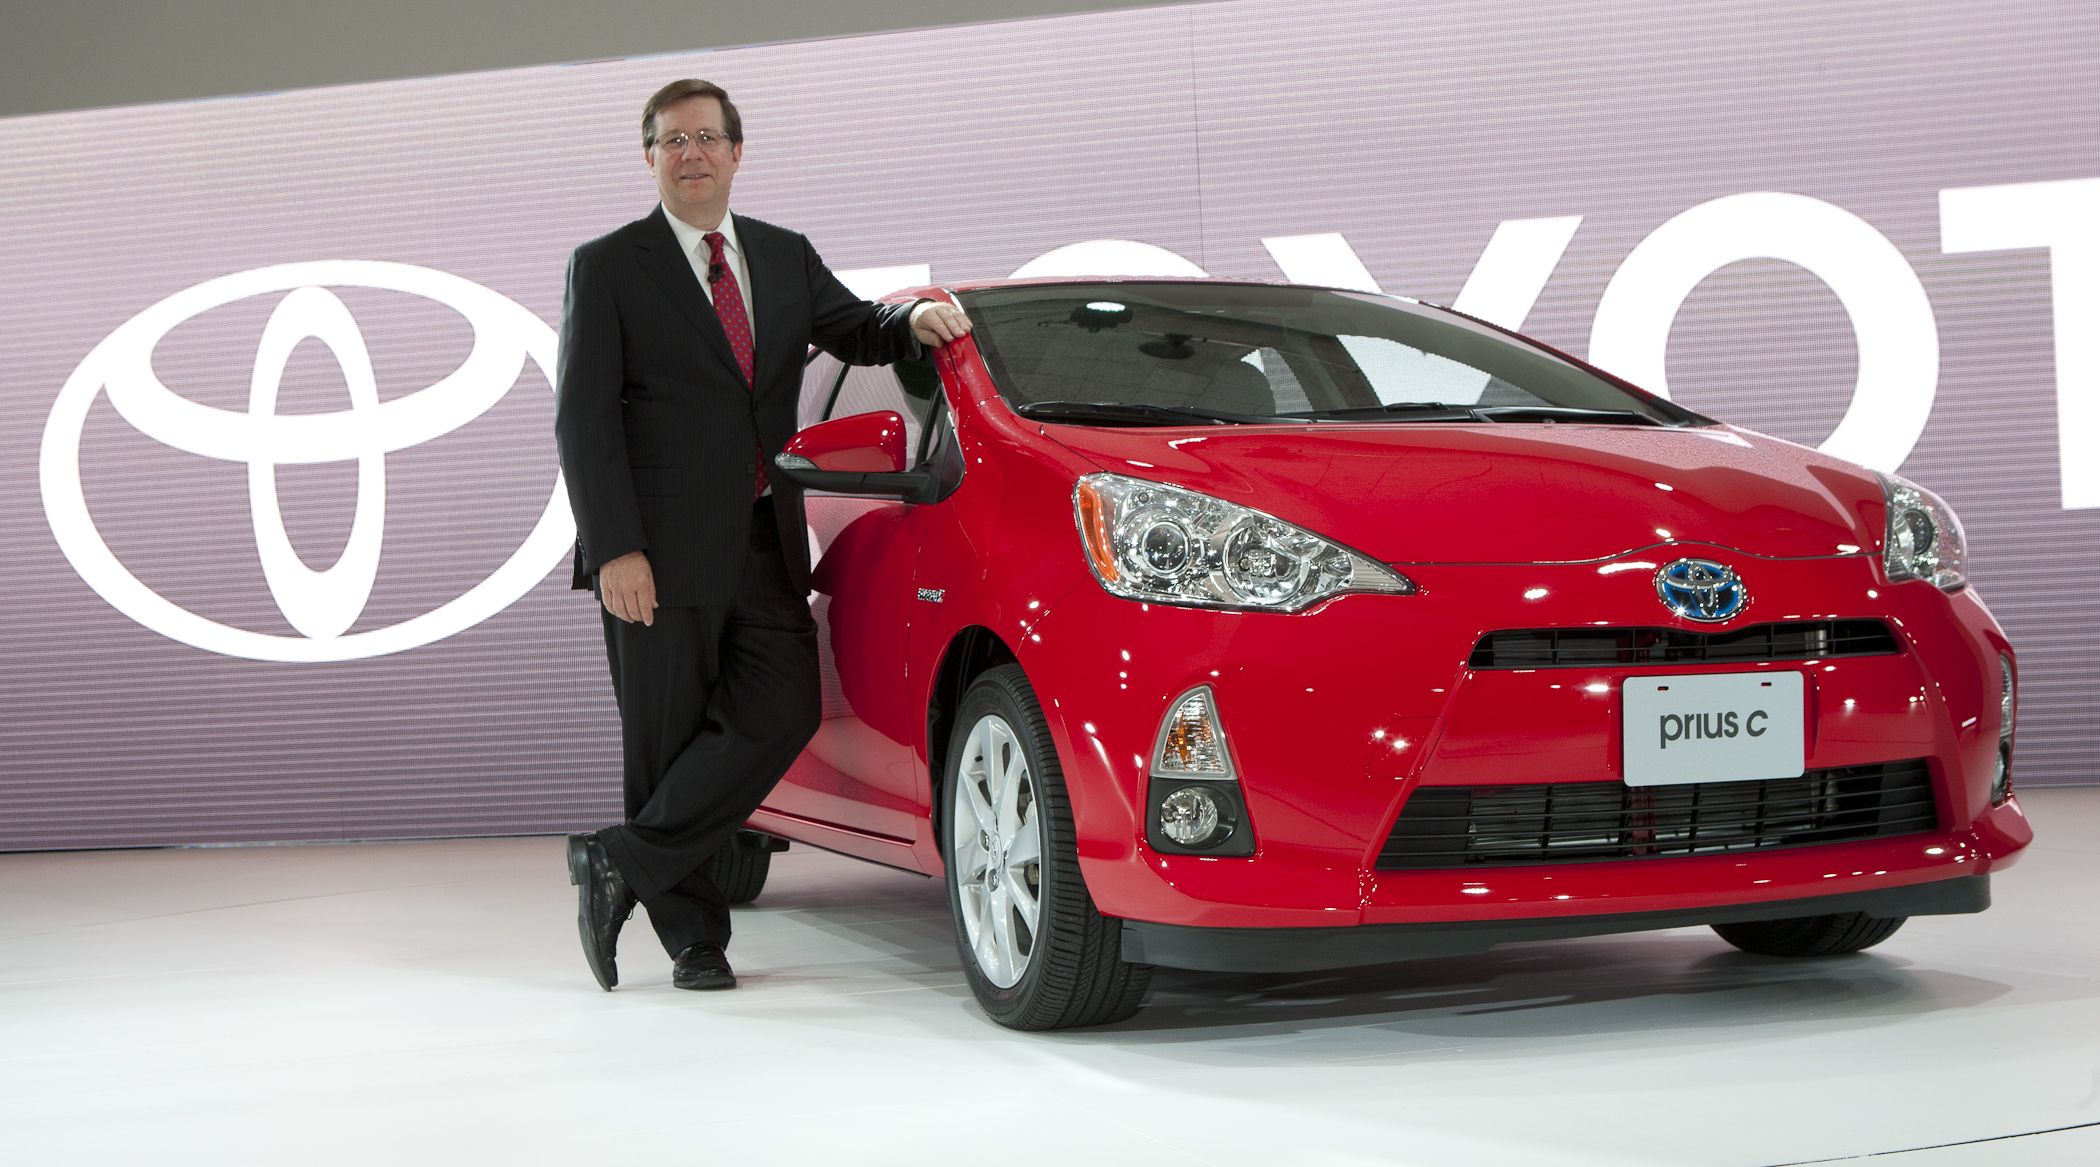 Toyota Shows New 2012 Prius c in Detroit